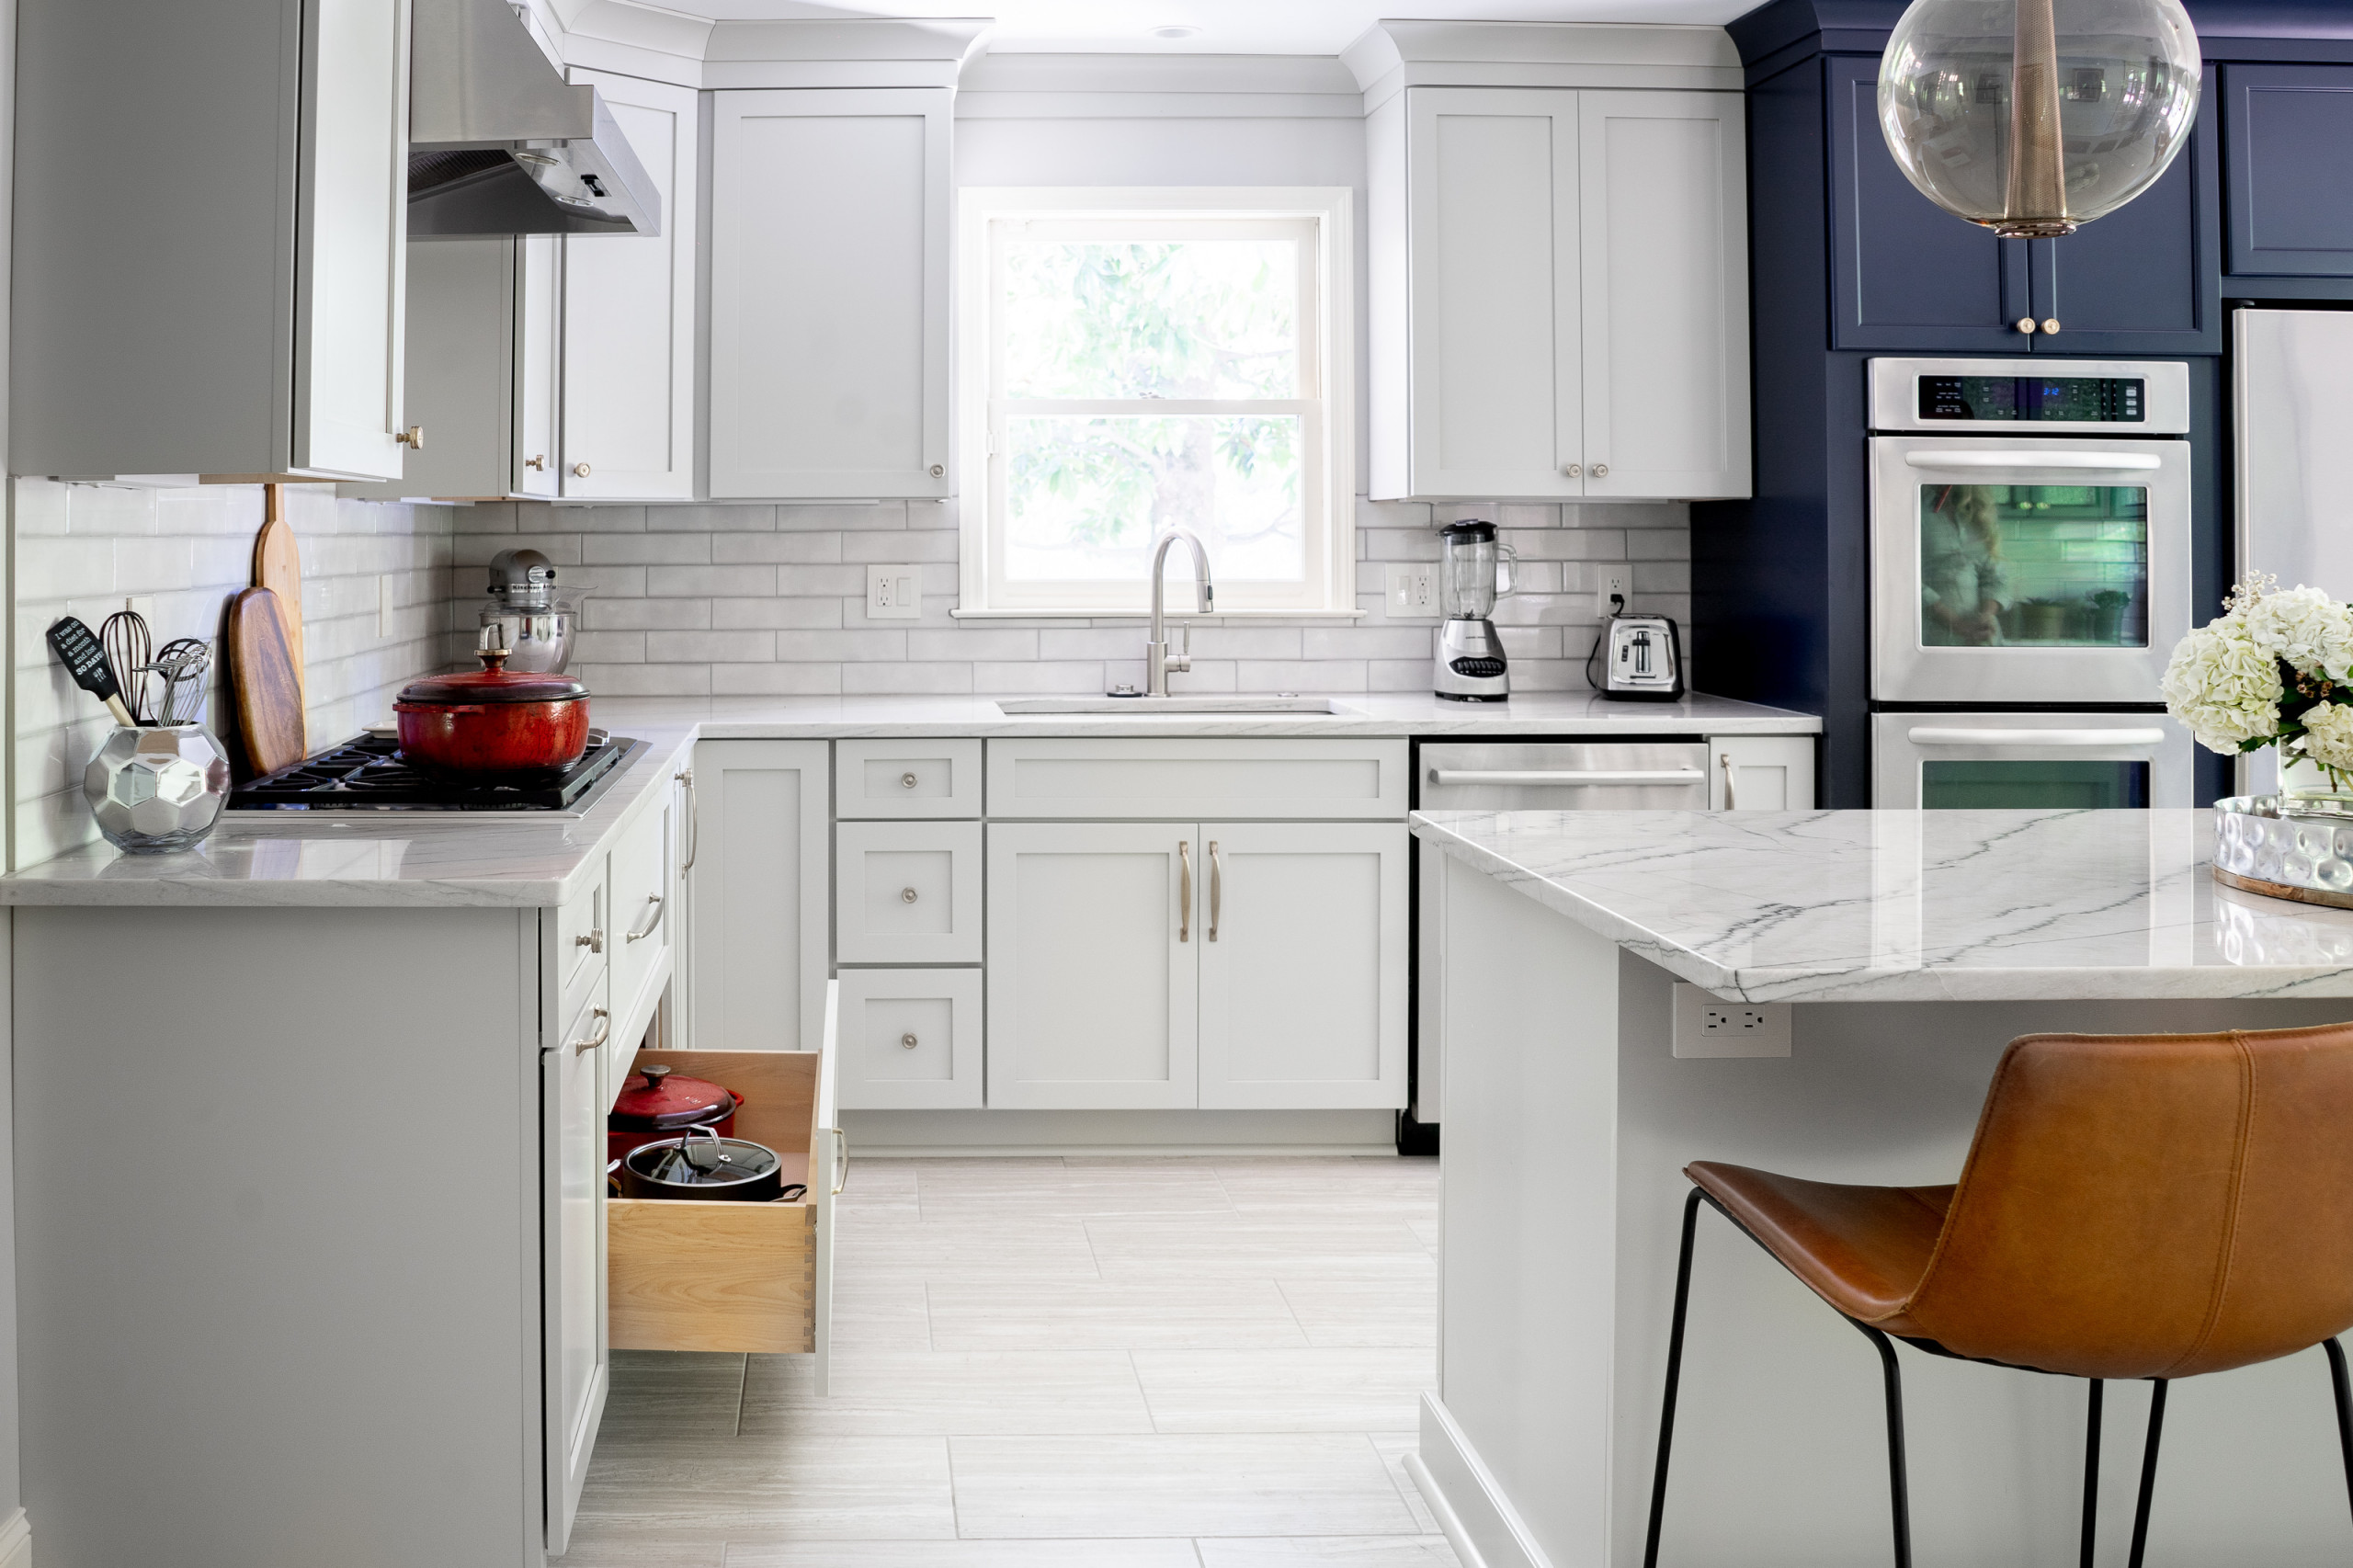 Soft Contemporary and Industrial Chic